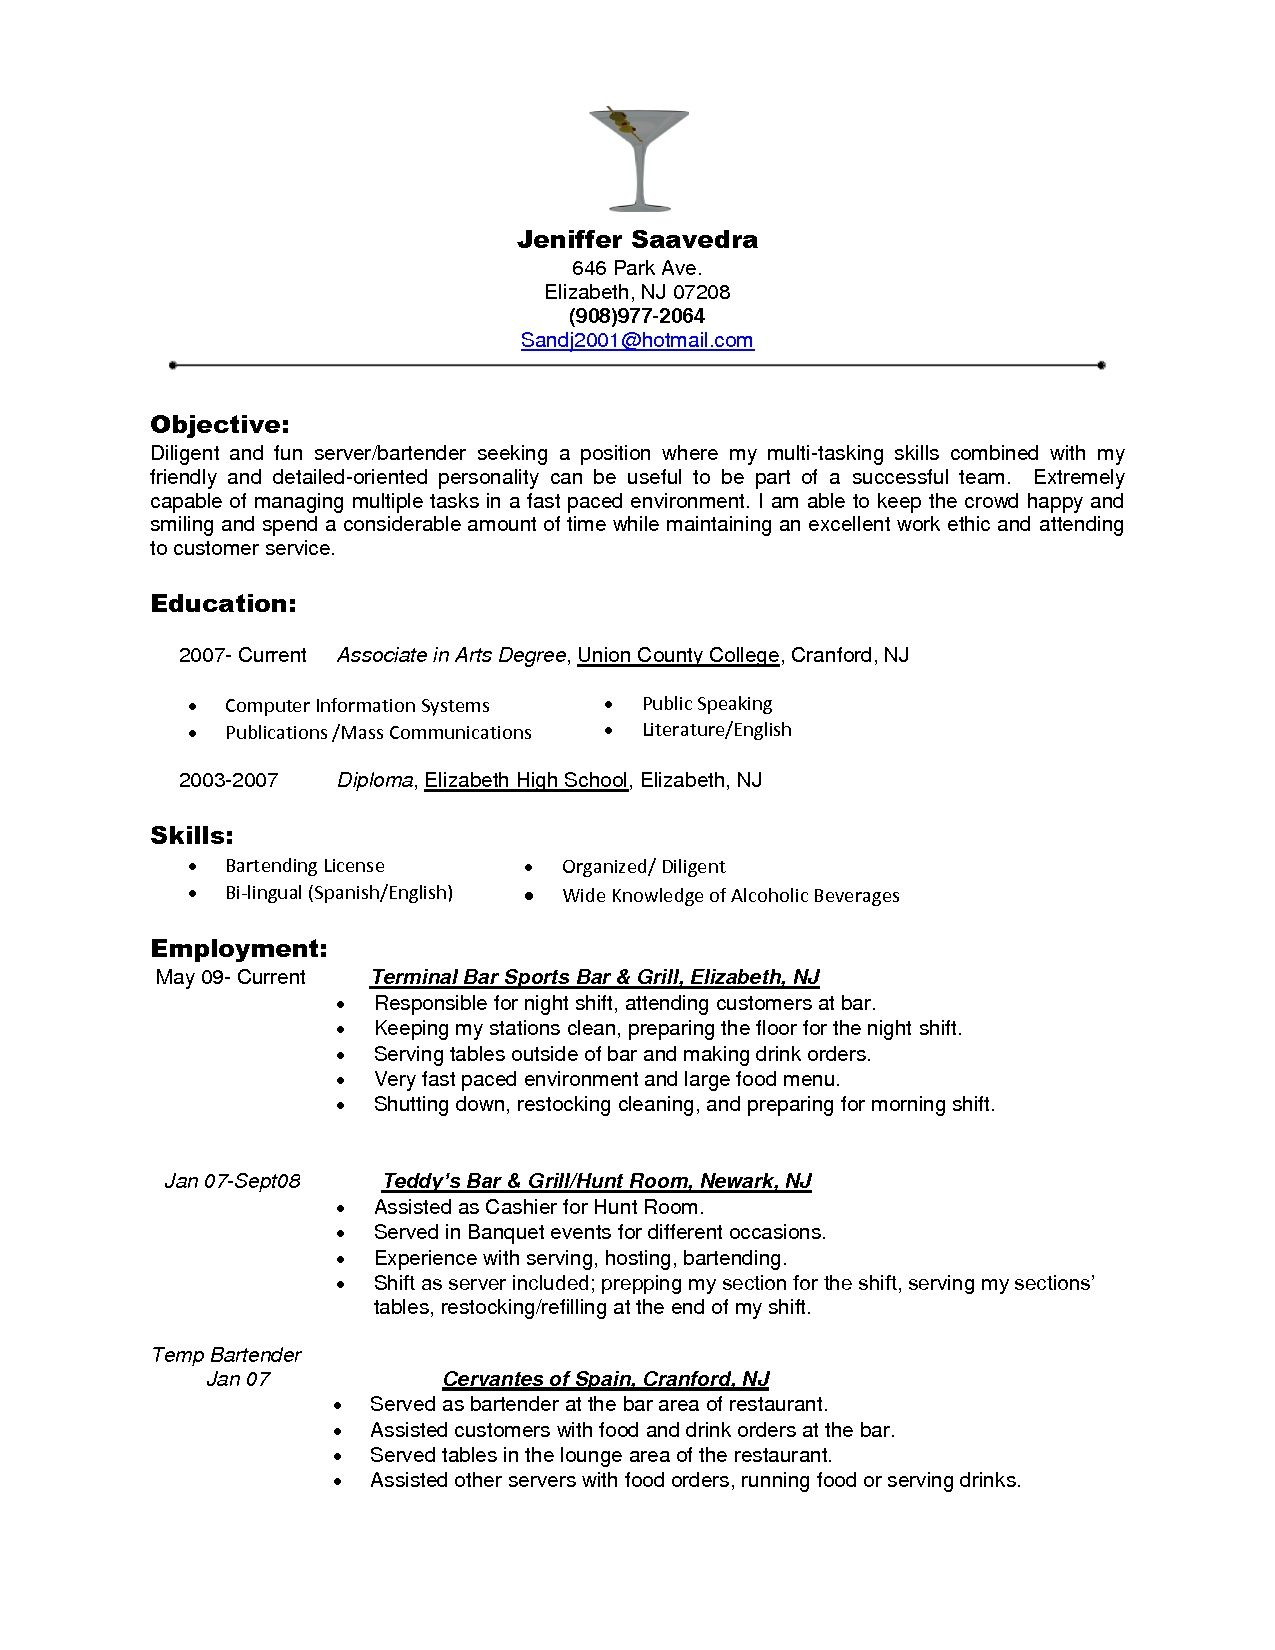 bartender objectives resume bartender objectives resume will give ideas and strategies to develop your own. Resume Example. Resume CV Cover Letter